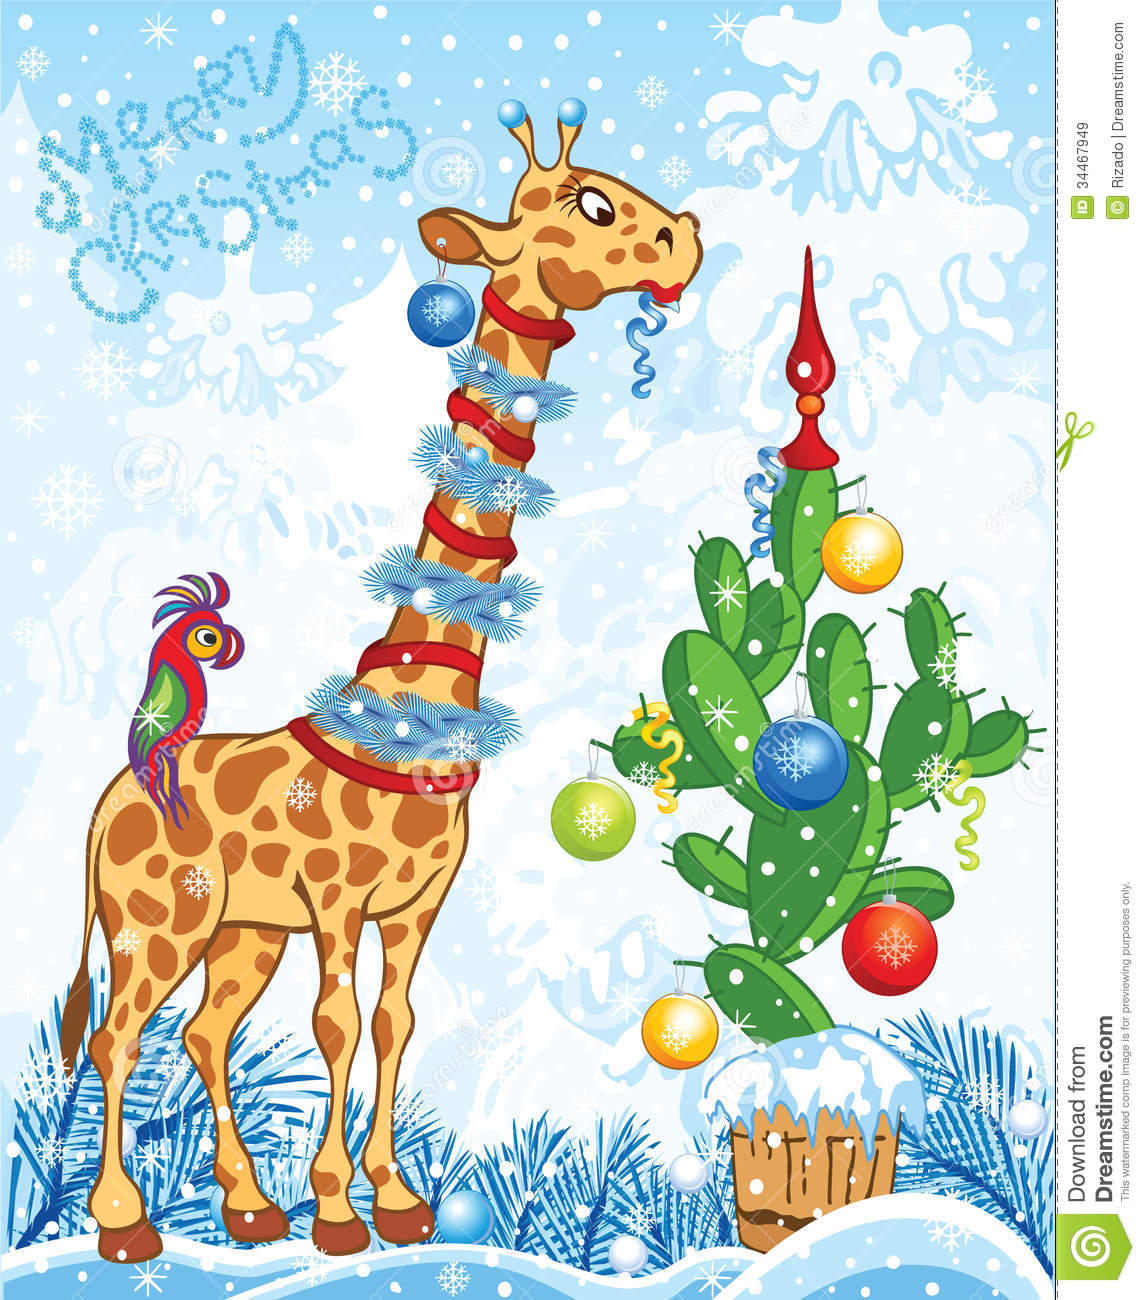 Christmas Card With Giraffe And Cactus Royalty Free Stock